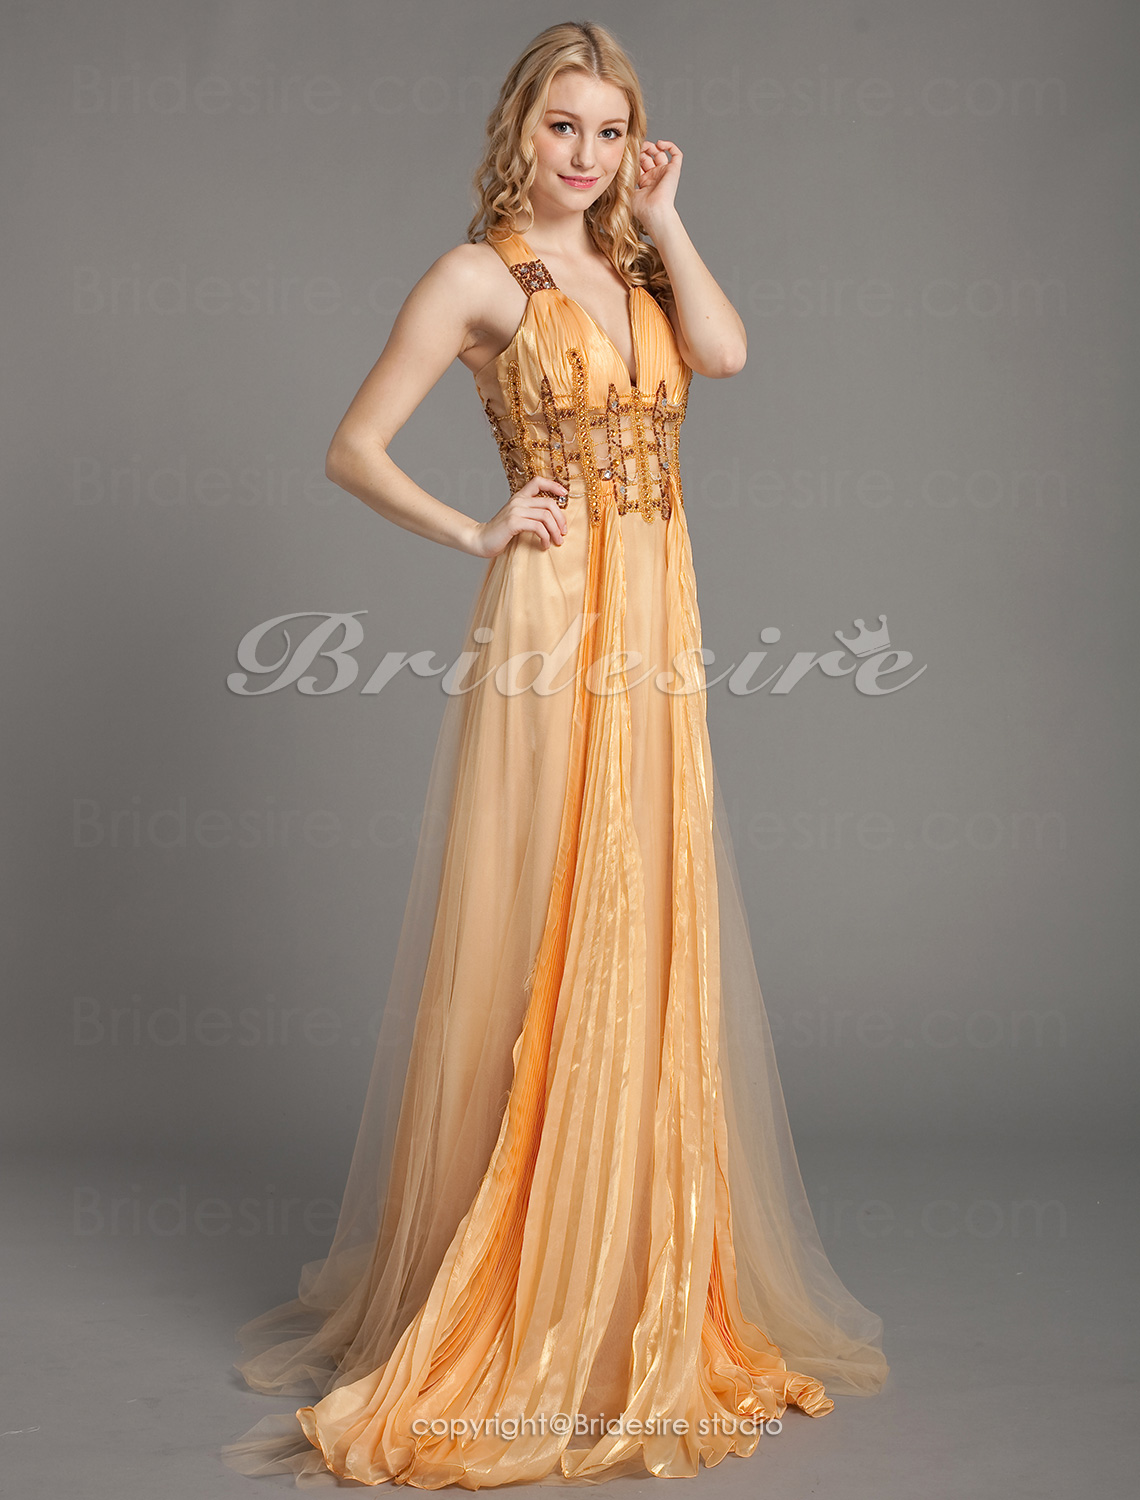 Sheath/Column Floor-length Straps Tulle Chiffon Evening Dress